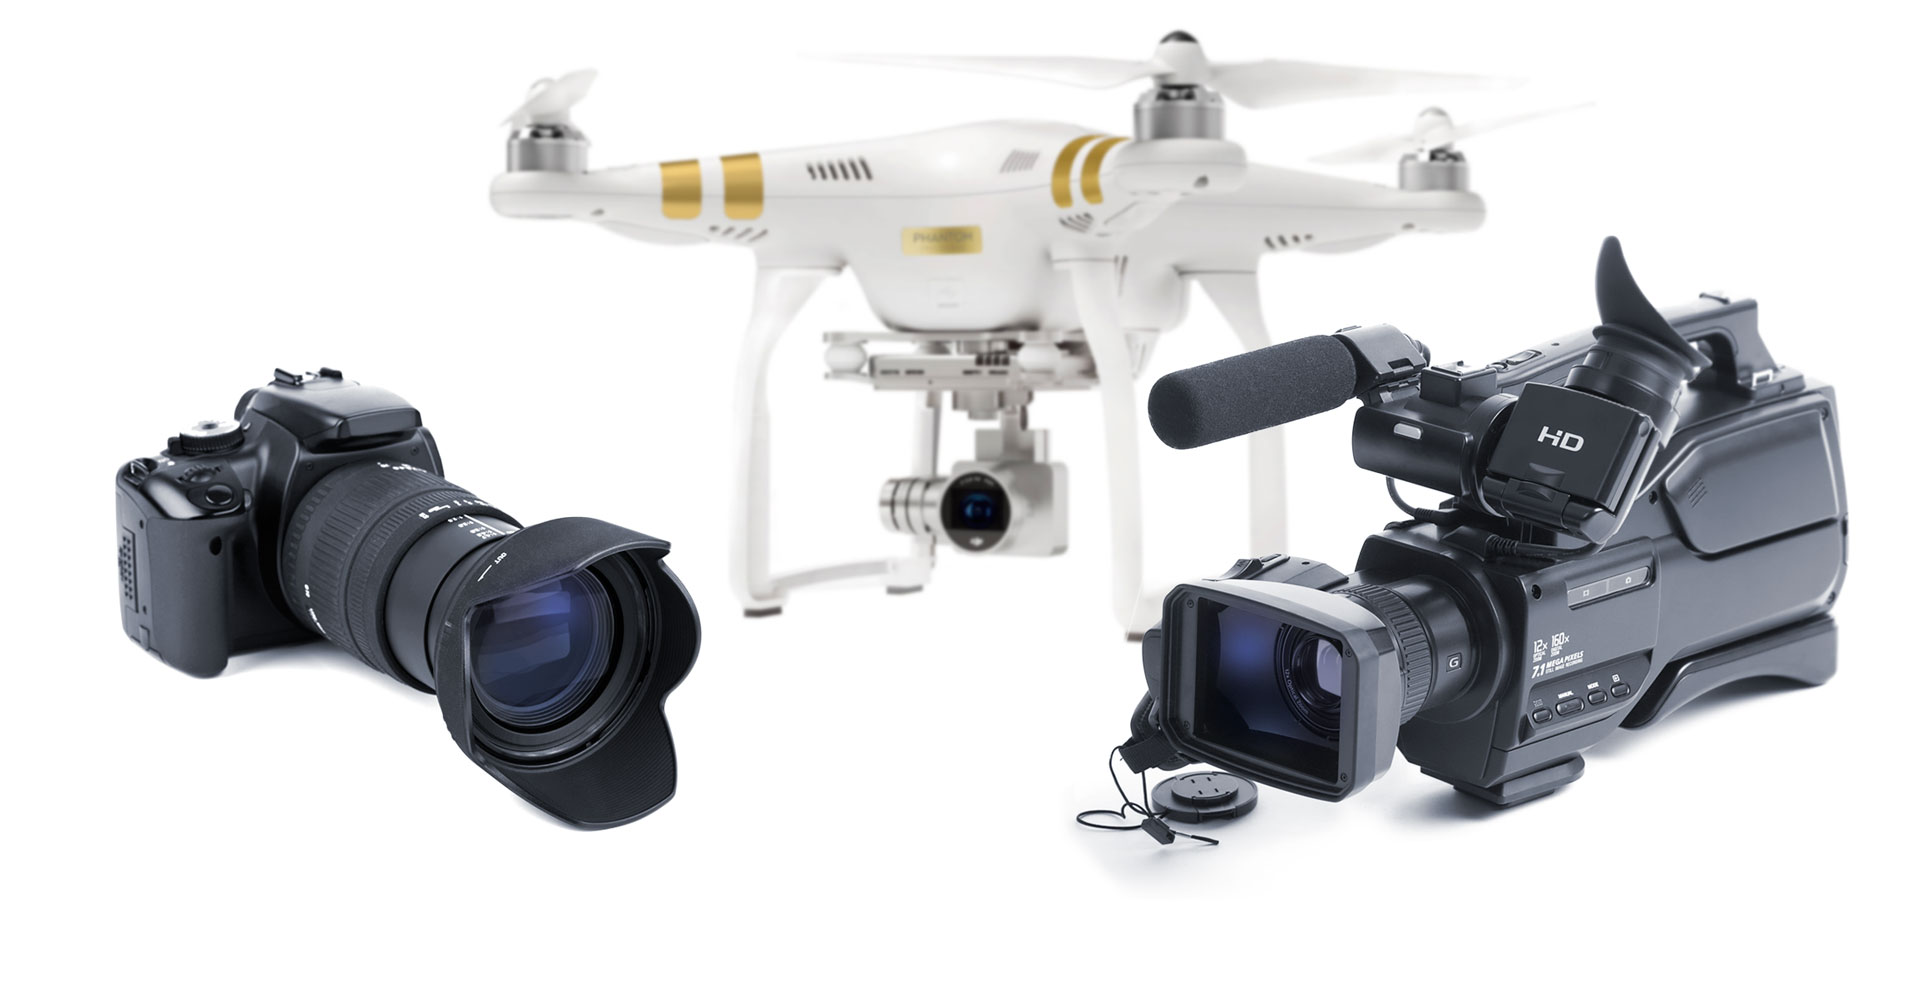 a Canon camera, HD Video Camera and a top of the line Drone